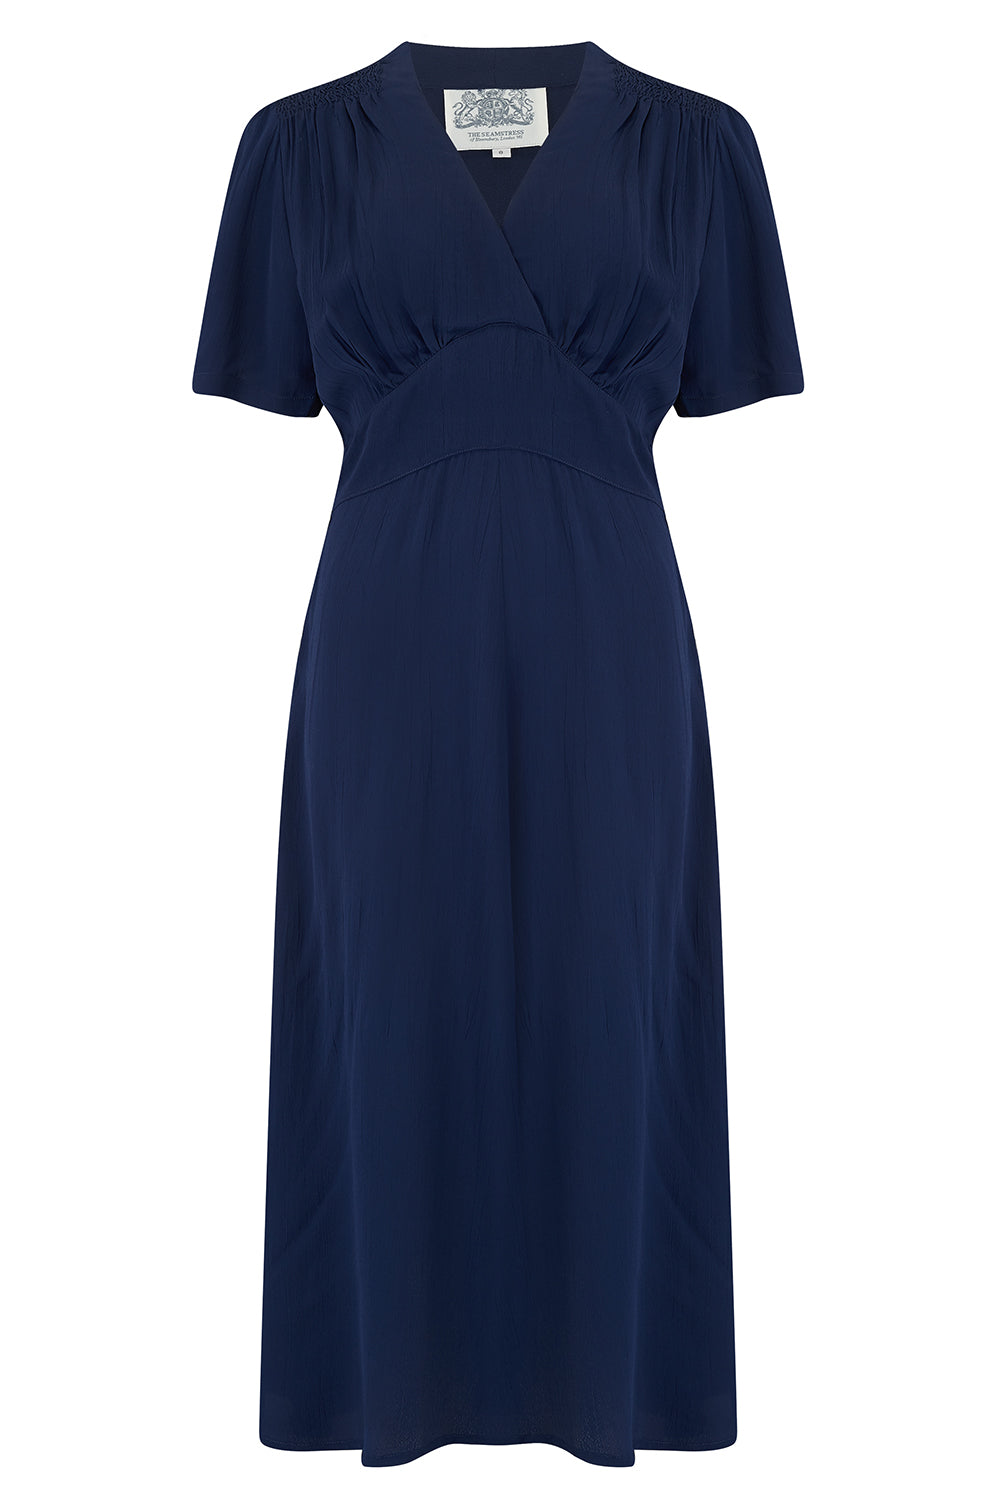 1940s Dress Styles Dolores Swing Dress in Solid Navy Classic 1940s Inspired Vintage Style £79.00 AT vintagedancer.com